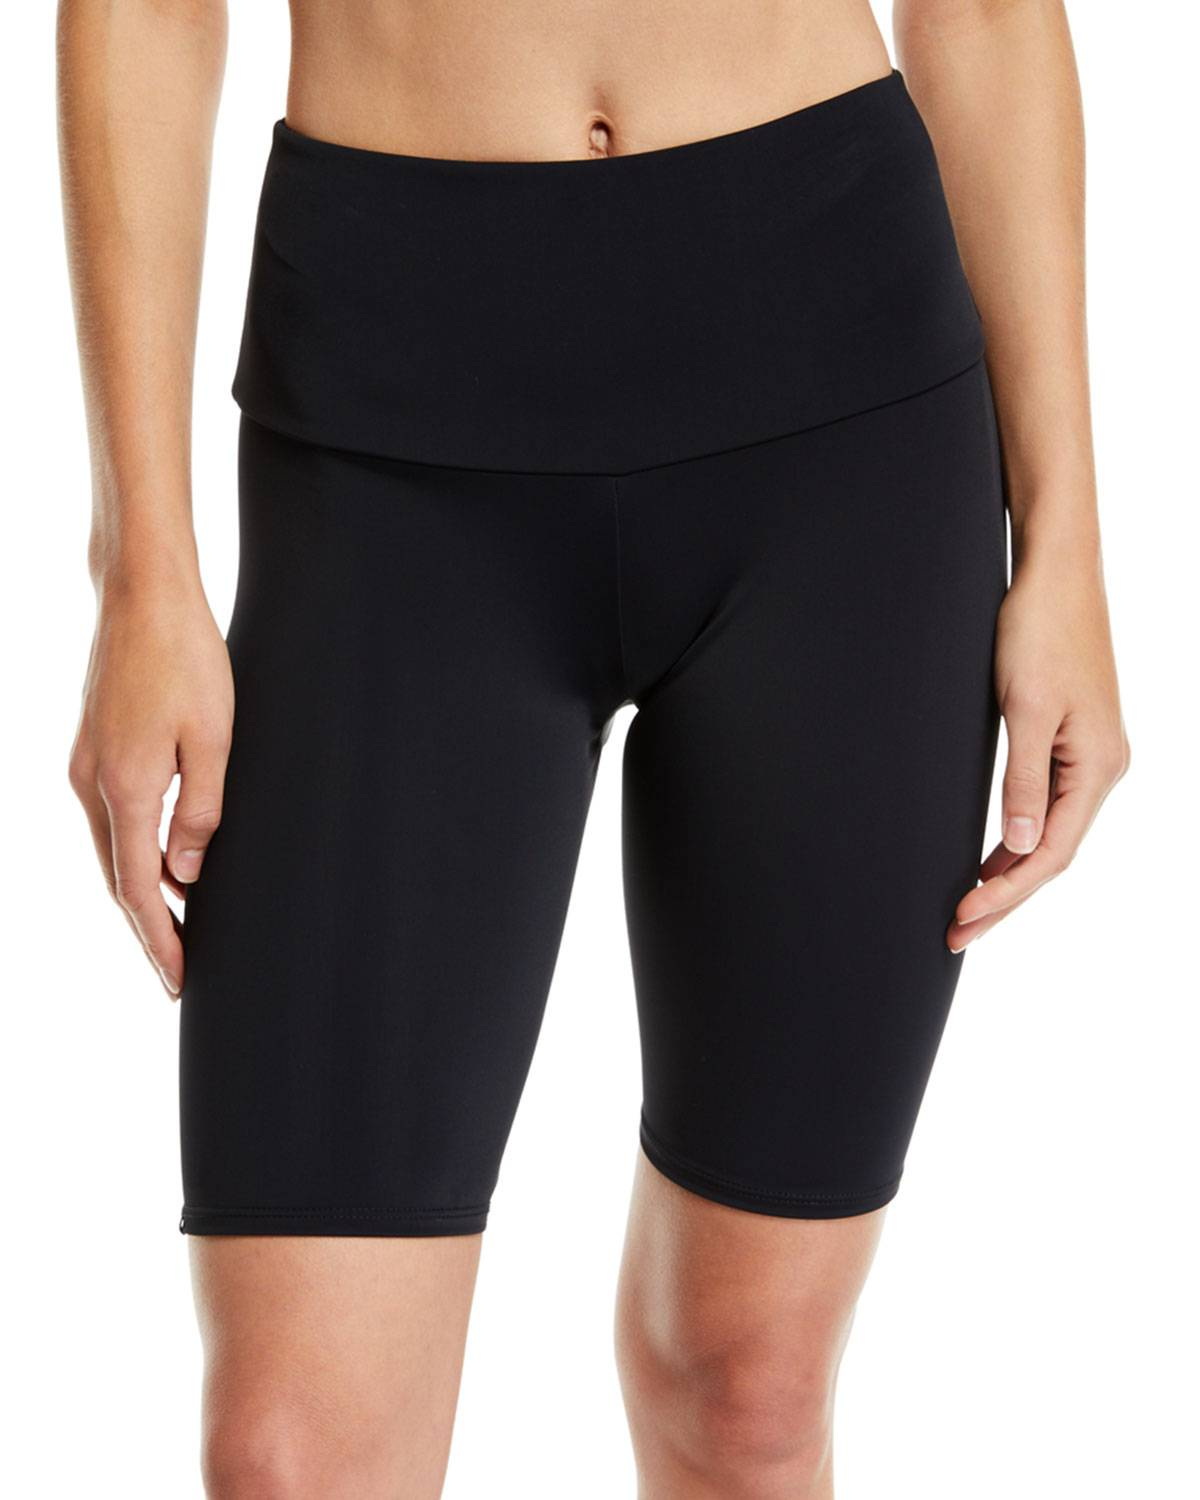 Onzie High-Rise Activewear Bike Shorts  - female - BLACK - Size: Small